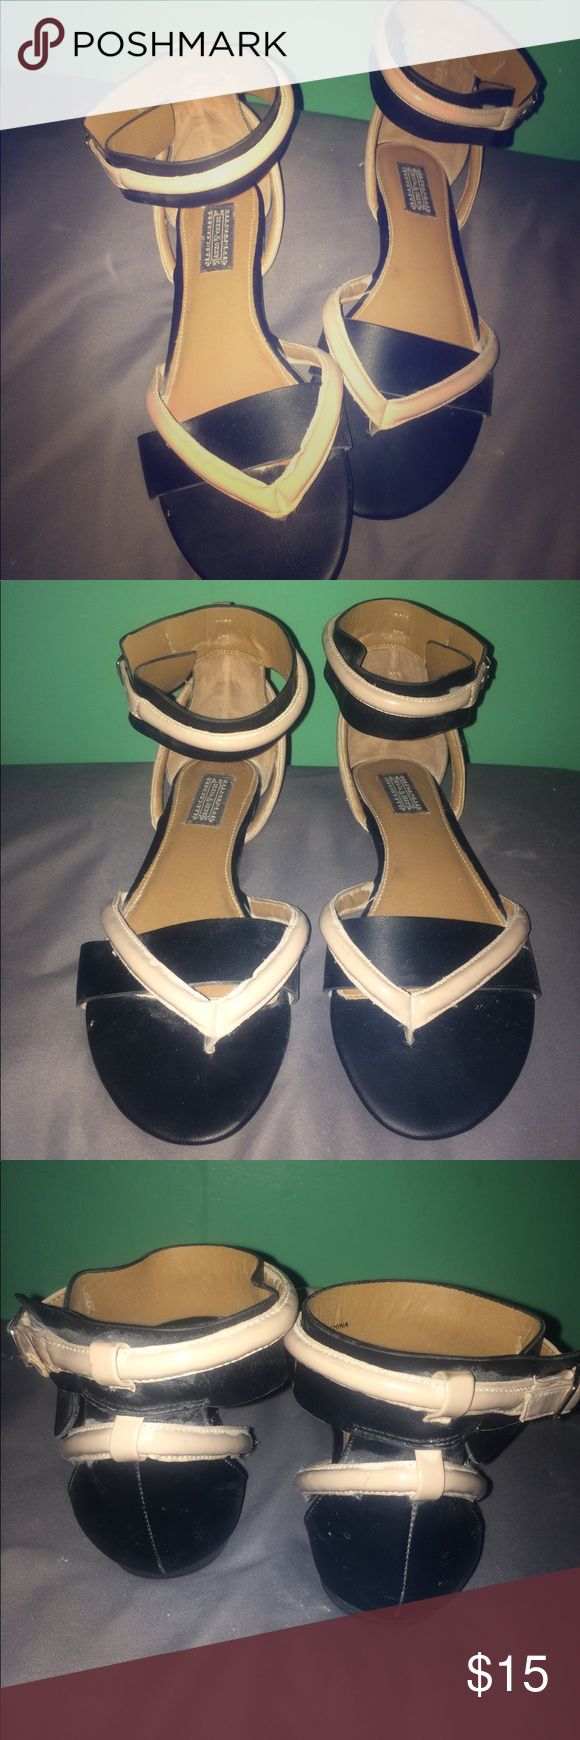 Black and Tan Deena & Ozzy sandals These sandals can be casual or dress. Paten leather straps. Never worn! Deena & Ozzy Shoes Sandals